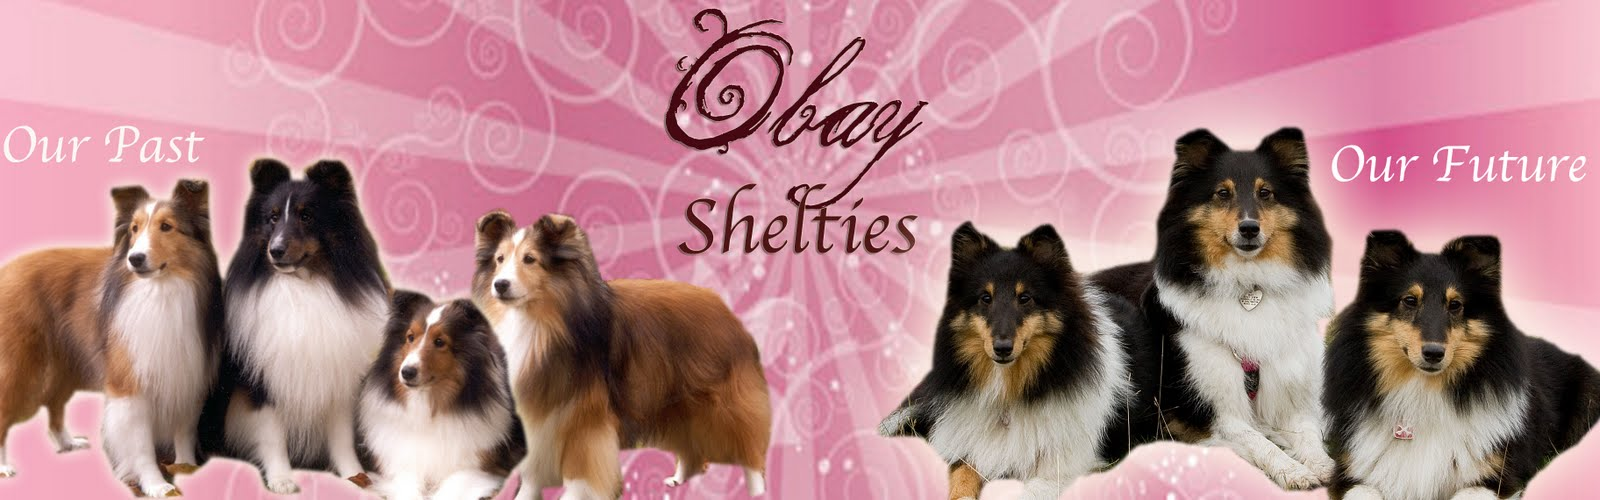 OBay Shelties